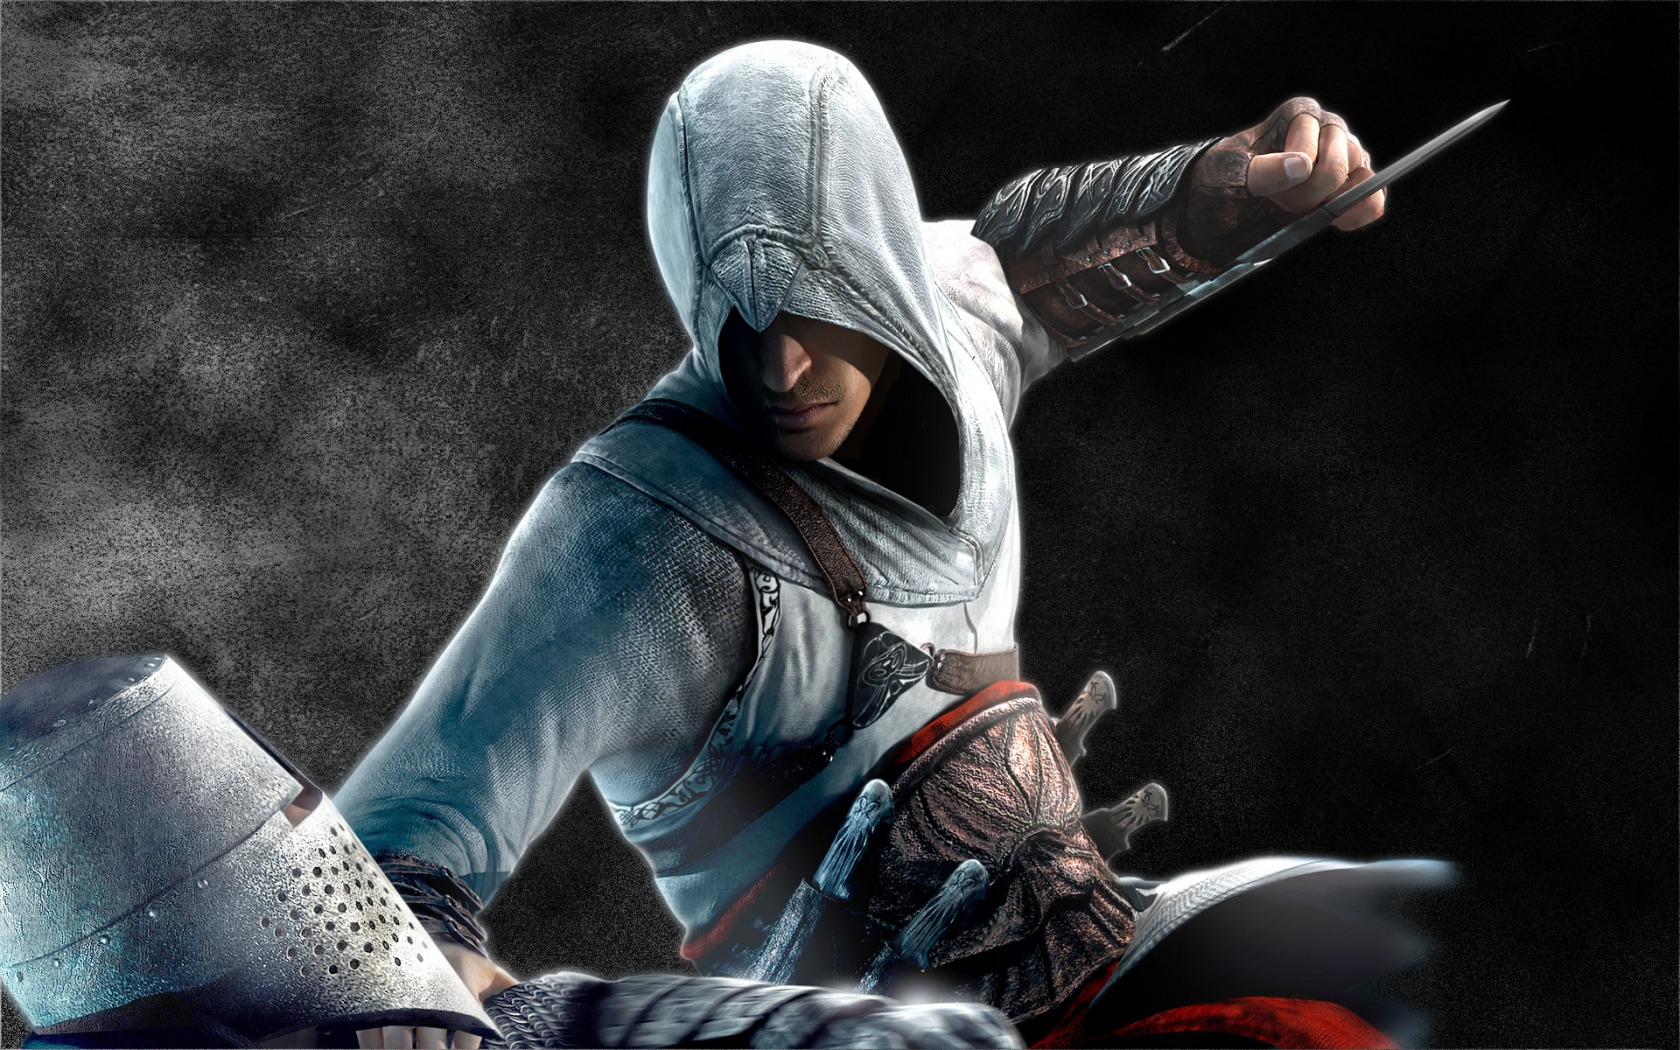 Assasins Creed Wallpaper Assasins Creed Games Wallpapers In Jpg Format For Free Download